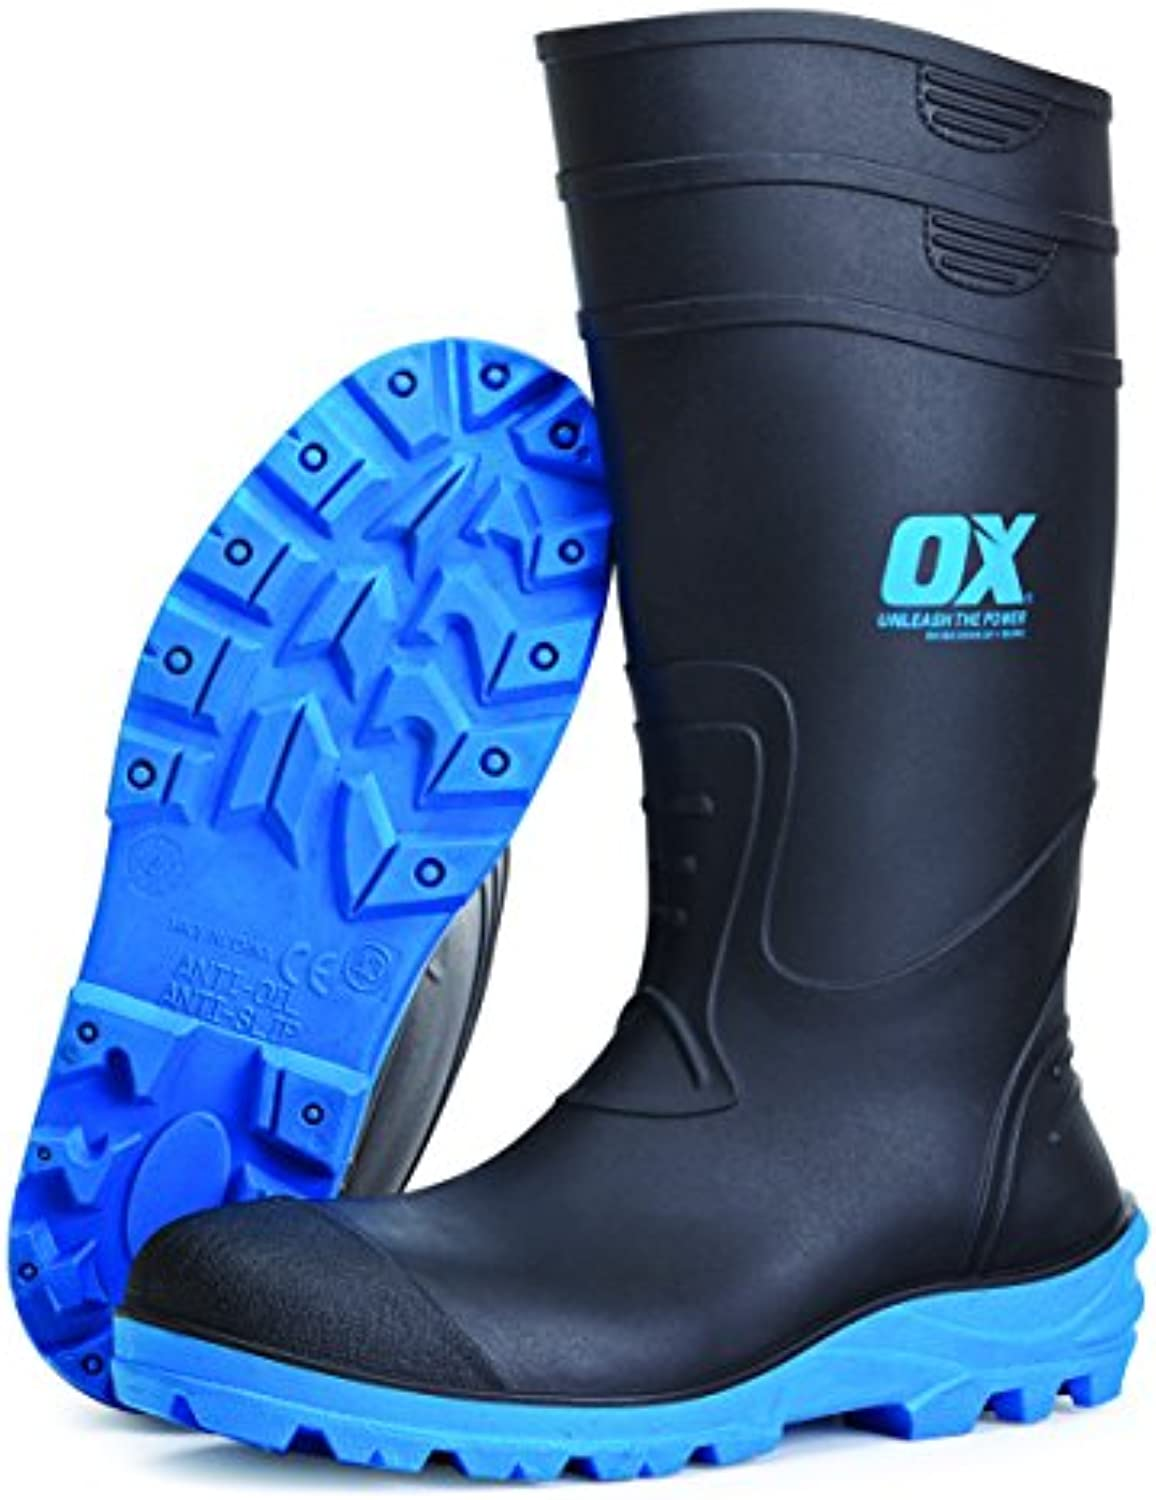 Buey ox-s242408 Safety Wellington Boot, Negro/Azul, tamaño 8